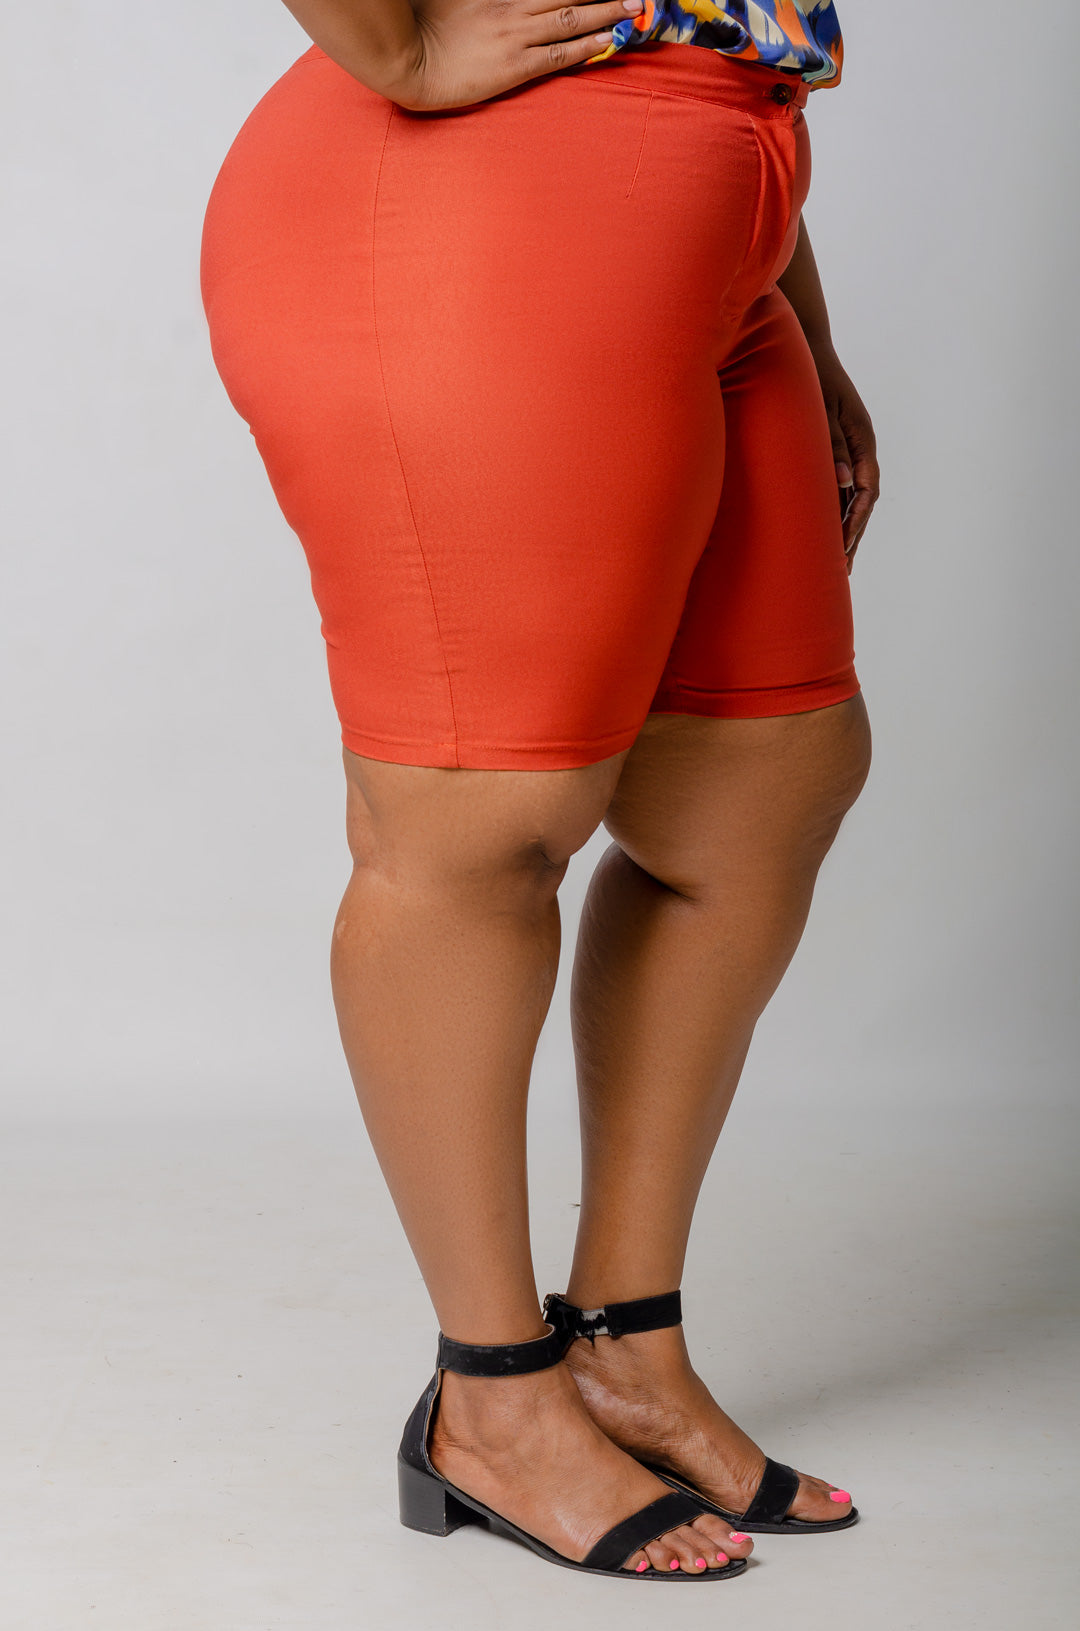 Phierce Fit Bermuda Shorts - Orange